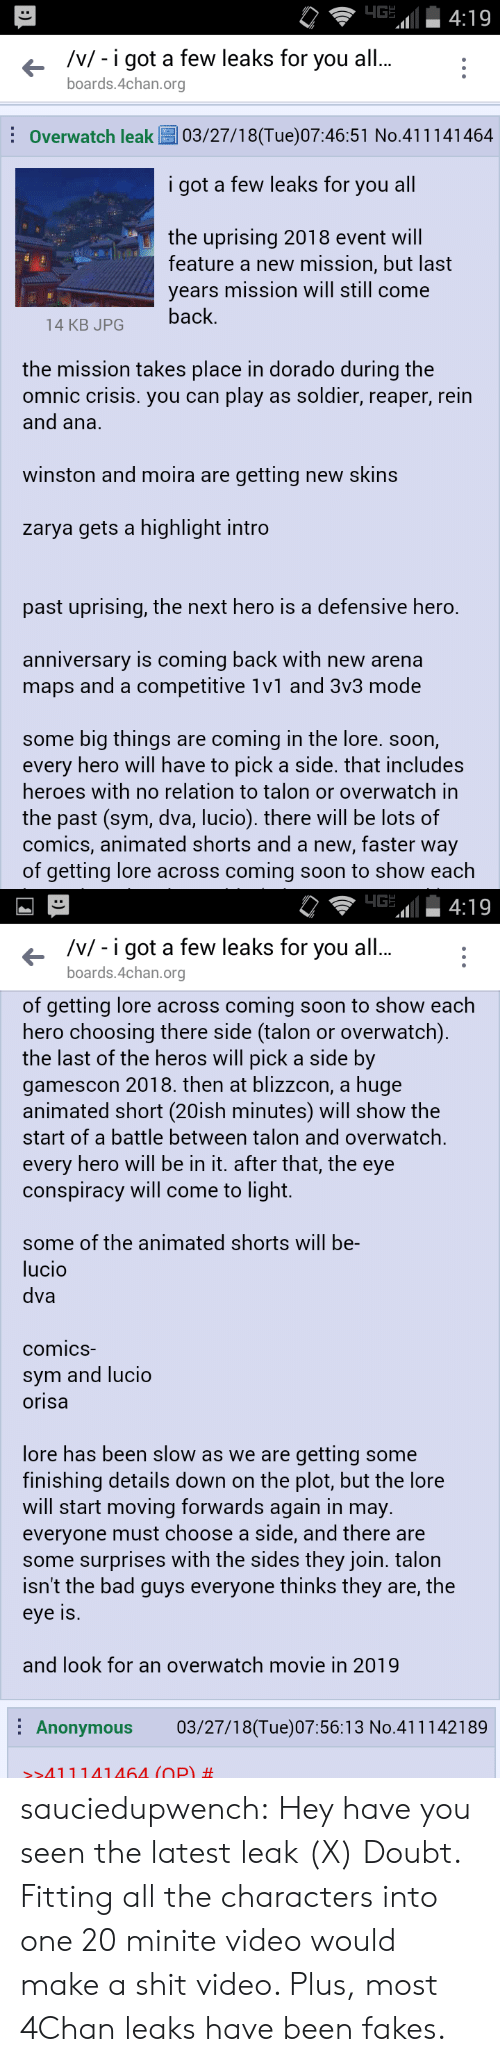 Blizzcon: /v/- i got a few leaks for you al  boards.4chan.org  Overwatch leak03/27/18(Tue)07:46:51 No.411141464  i got a few leaks for you all  the uprising 2018 event will  feature a new mission, but last  years mission will still come  14 KB JPGback  the mission takes place in dorado during the  omnic crisis. you can play as soldier, reaper, rein  and ana.  winston and moira are getting new skins  zarya gets a highlight intro  past uprising, the next hero is a defensive hero.  anniversary is coming back with new arena  maps and a competitive 1v1 and 3v3 mode  some big things are coming in the lore. soon,  every hero will have to pick a side. that includes  heroes with no relation to talon or overwatch in  the past (sym, dva, lucio). there will be lots of  comics, animated shorts and a new, faster way  of getting lore across coming soon to show each   /v/ - i got a few leaks for you all  boards.4chan.org  of getting lore across coming soon to show each  hero choosing there side (talon or overwatch)  the last of the heros will pick a side by  gamescon 2018. then at blizzcon, a huge  animated short (20ish minutes) will show the  start of a battle between talon and overwatch,  every hero will be in it. after that, the eye  conspiracy will come to light.  some of the animated shorts will be-  lucio  dva  comicS  sym and lucio  orisa  lore has been slow as we are getting some  finishing details down on the plot, but the lore  will start moving forwards again in may.  everyone must choose a side, and there are  some surprises with the sides they join. talon  isn't the bad guys everyone thinks they are, the  eye Is  and look for an overwatch movie in 2019  Anonymous 03/27/18(Tue)07:56:13 No.411142189  >>411141464 (OP) sauciedupwench:  Hey have you seen the latest leak  (X) Doubt. Fitting all the characters into one 20 minite video would make a shit video. Plus, most 4Chan leaks have been fakes.